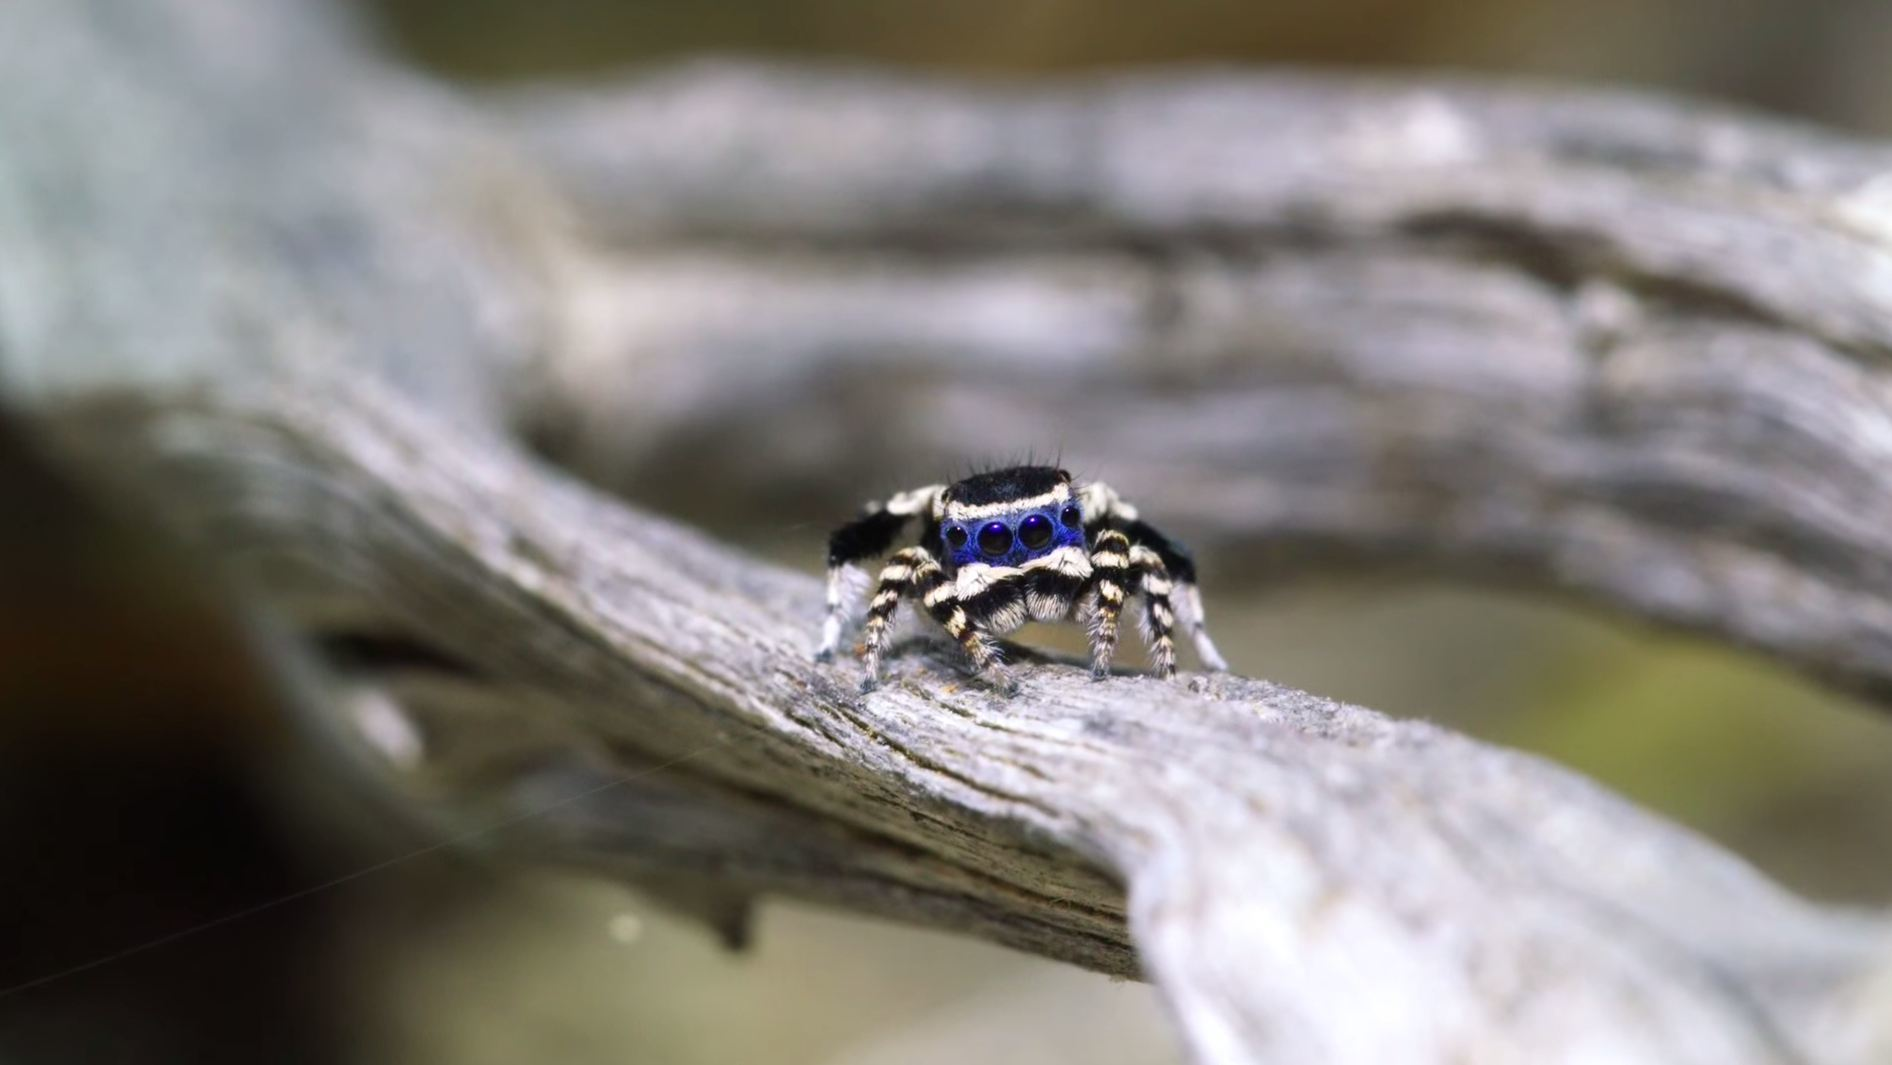 The masked peacock spider.